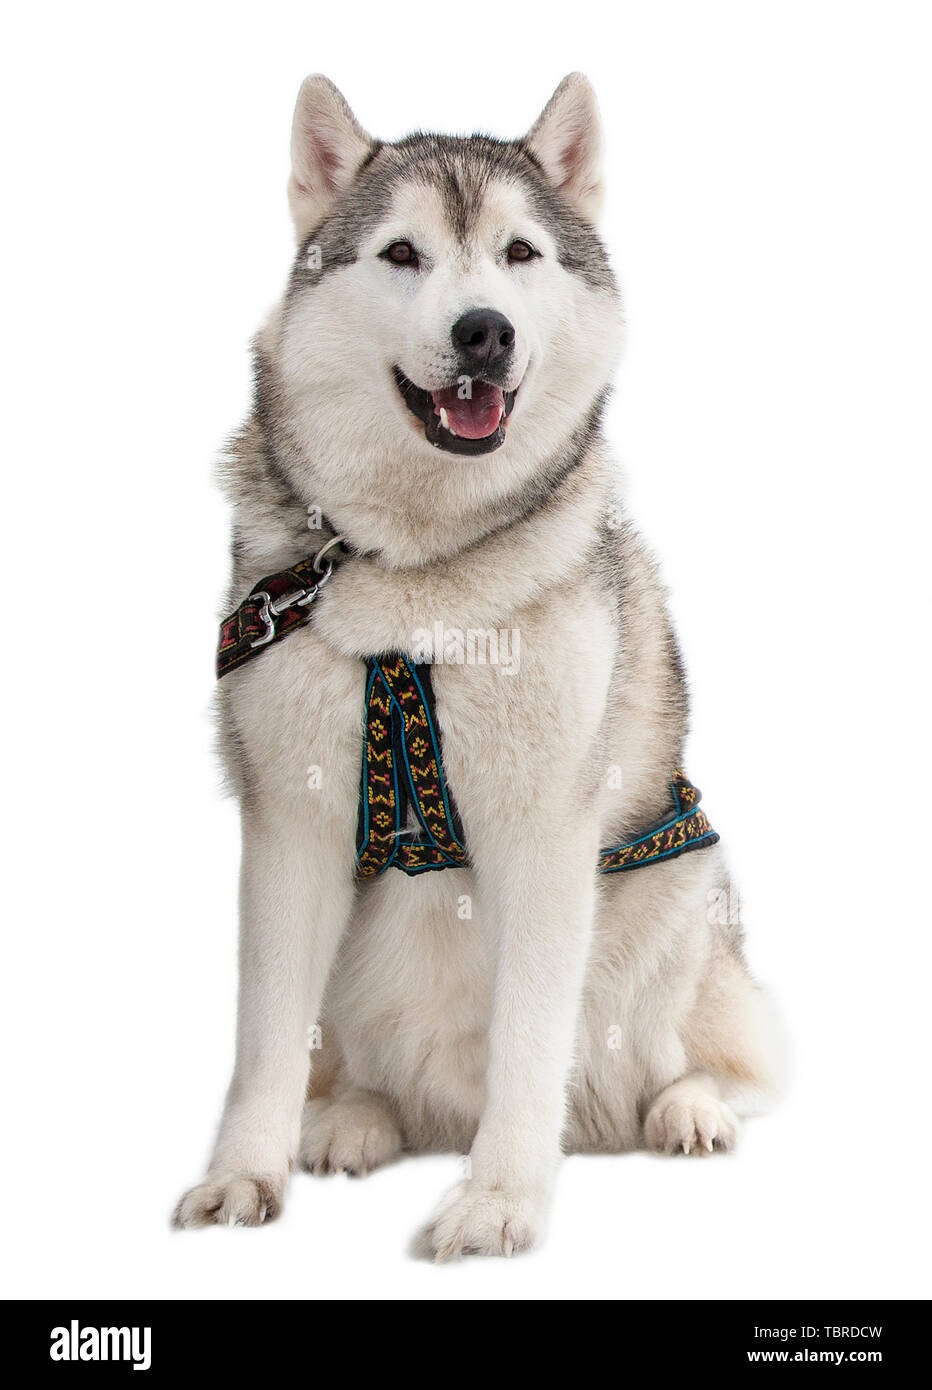 Siberian Husky in front of a white background - Stock Image